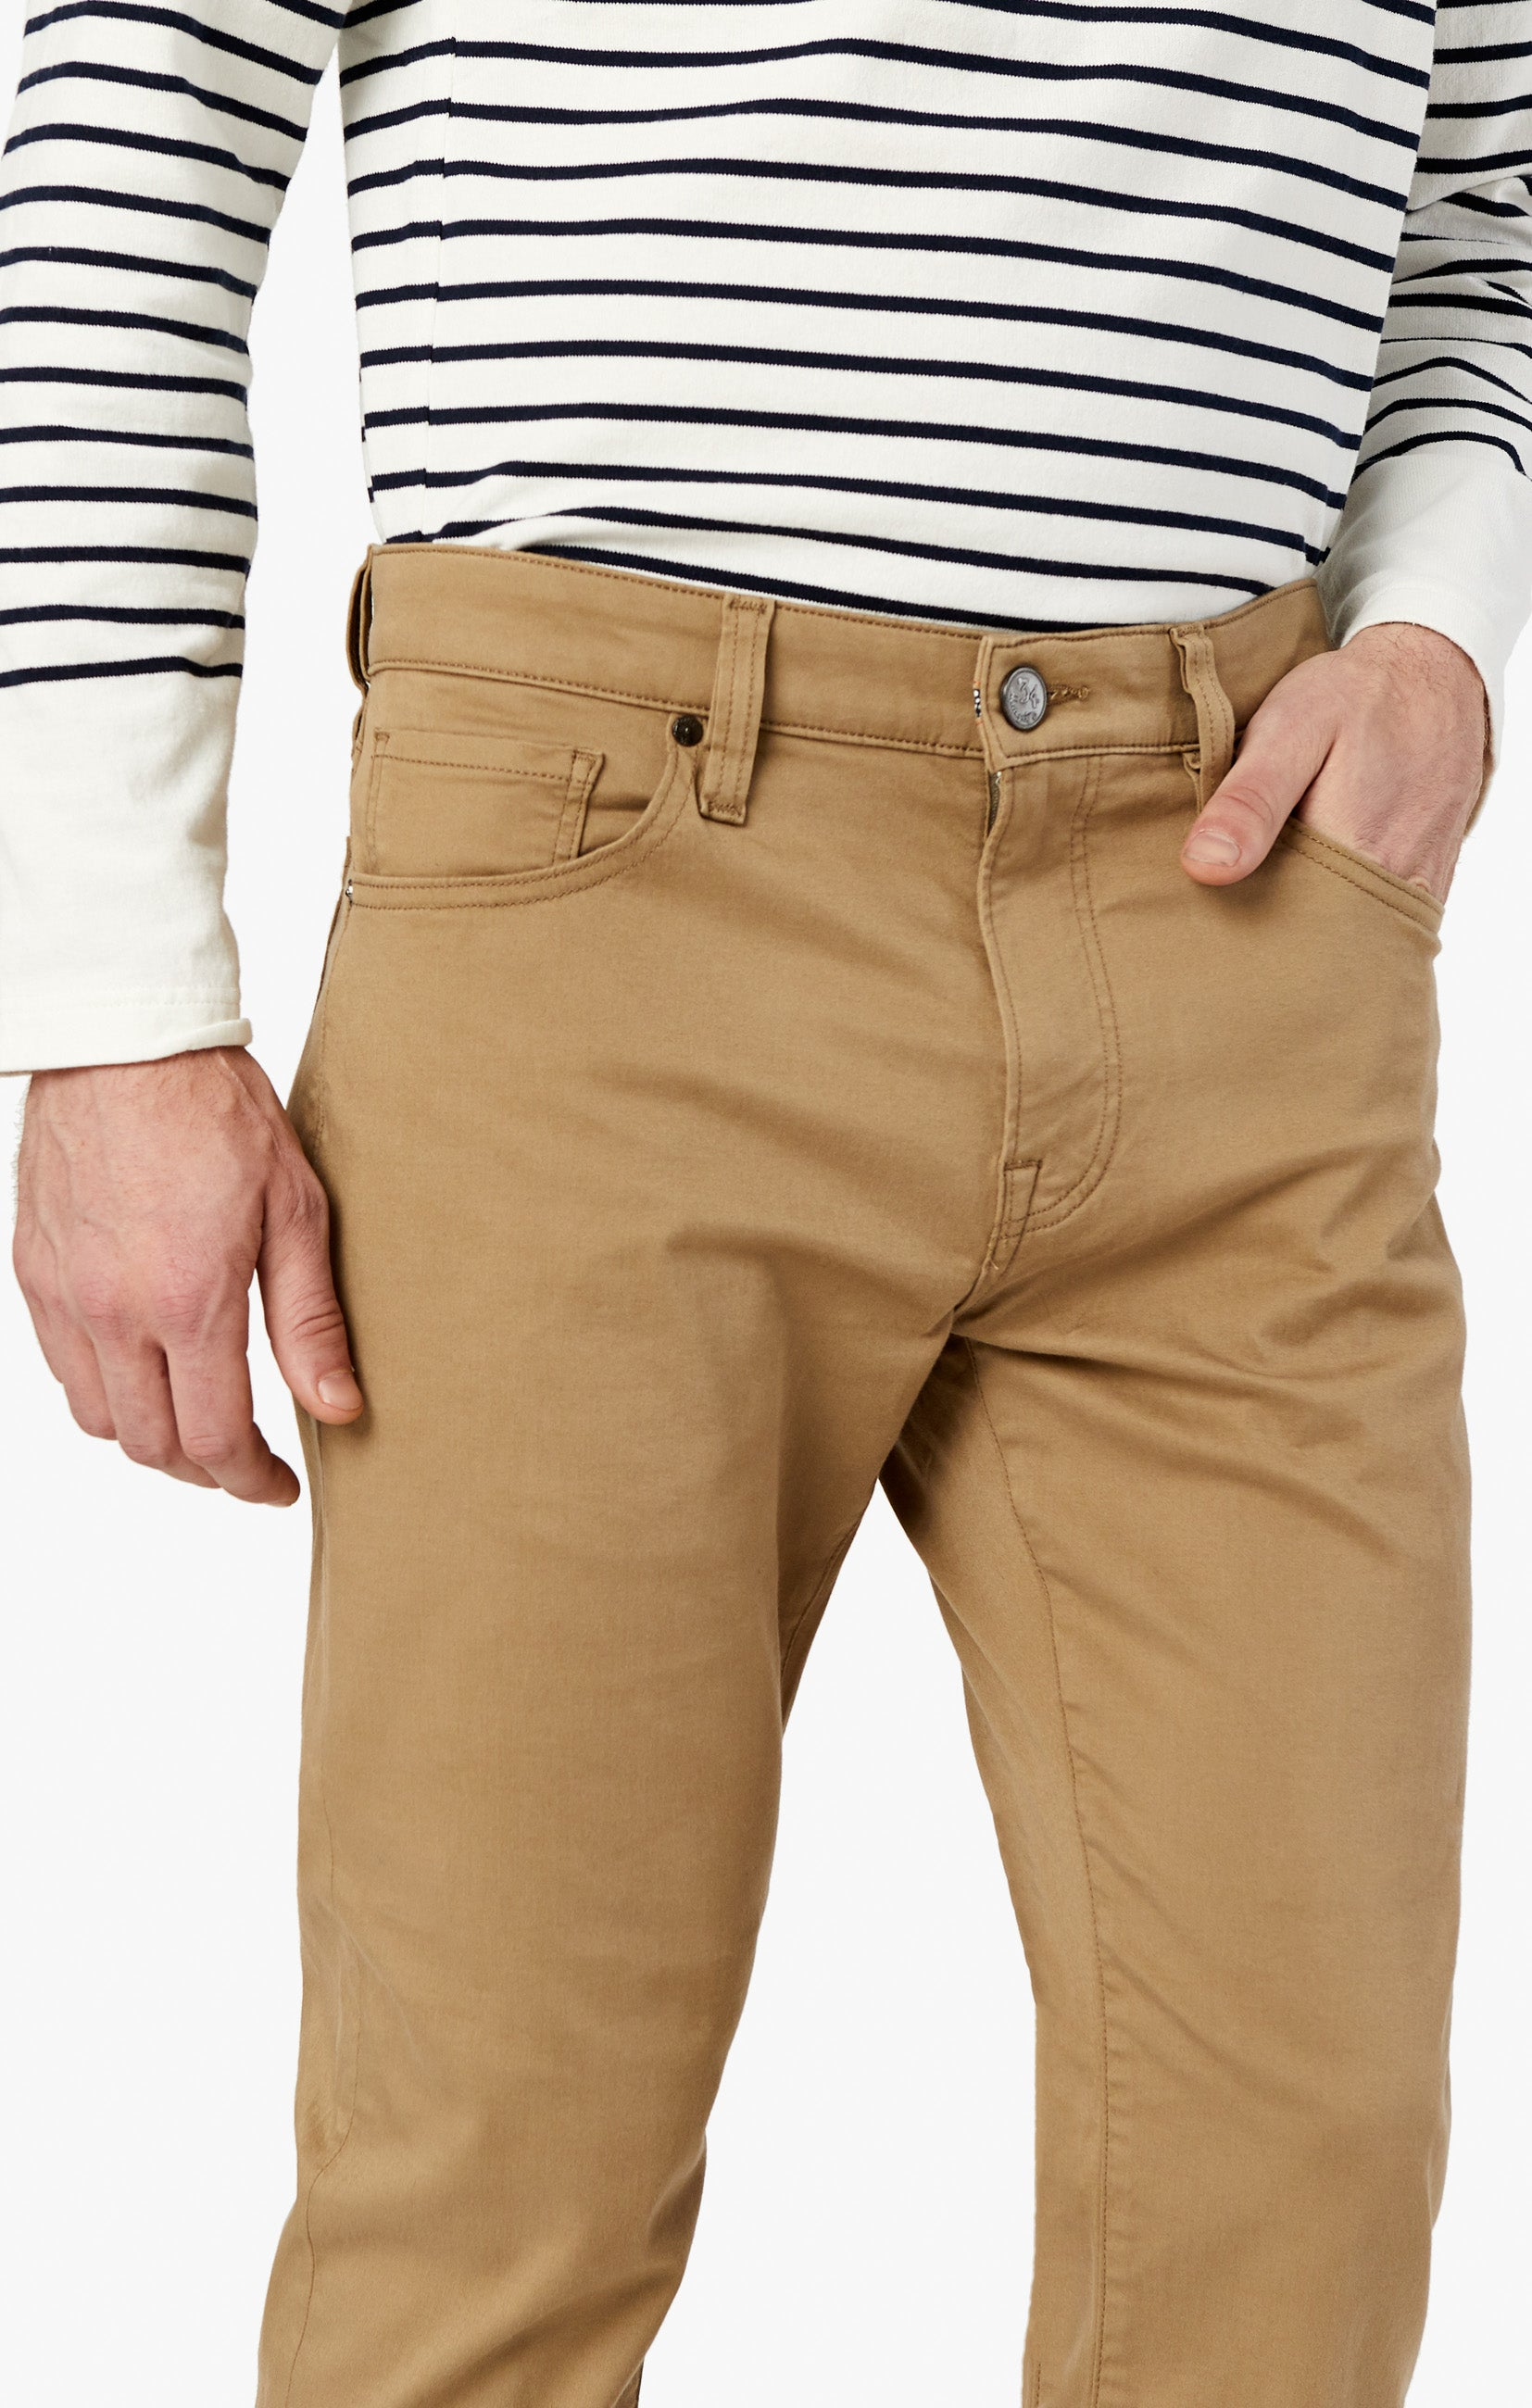 Courage Straight Leg Pants In Khaki Twill Image 8